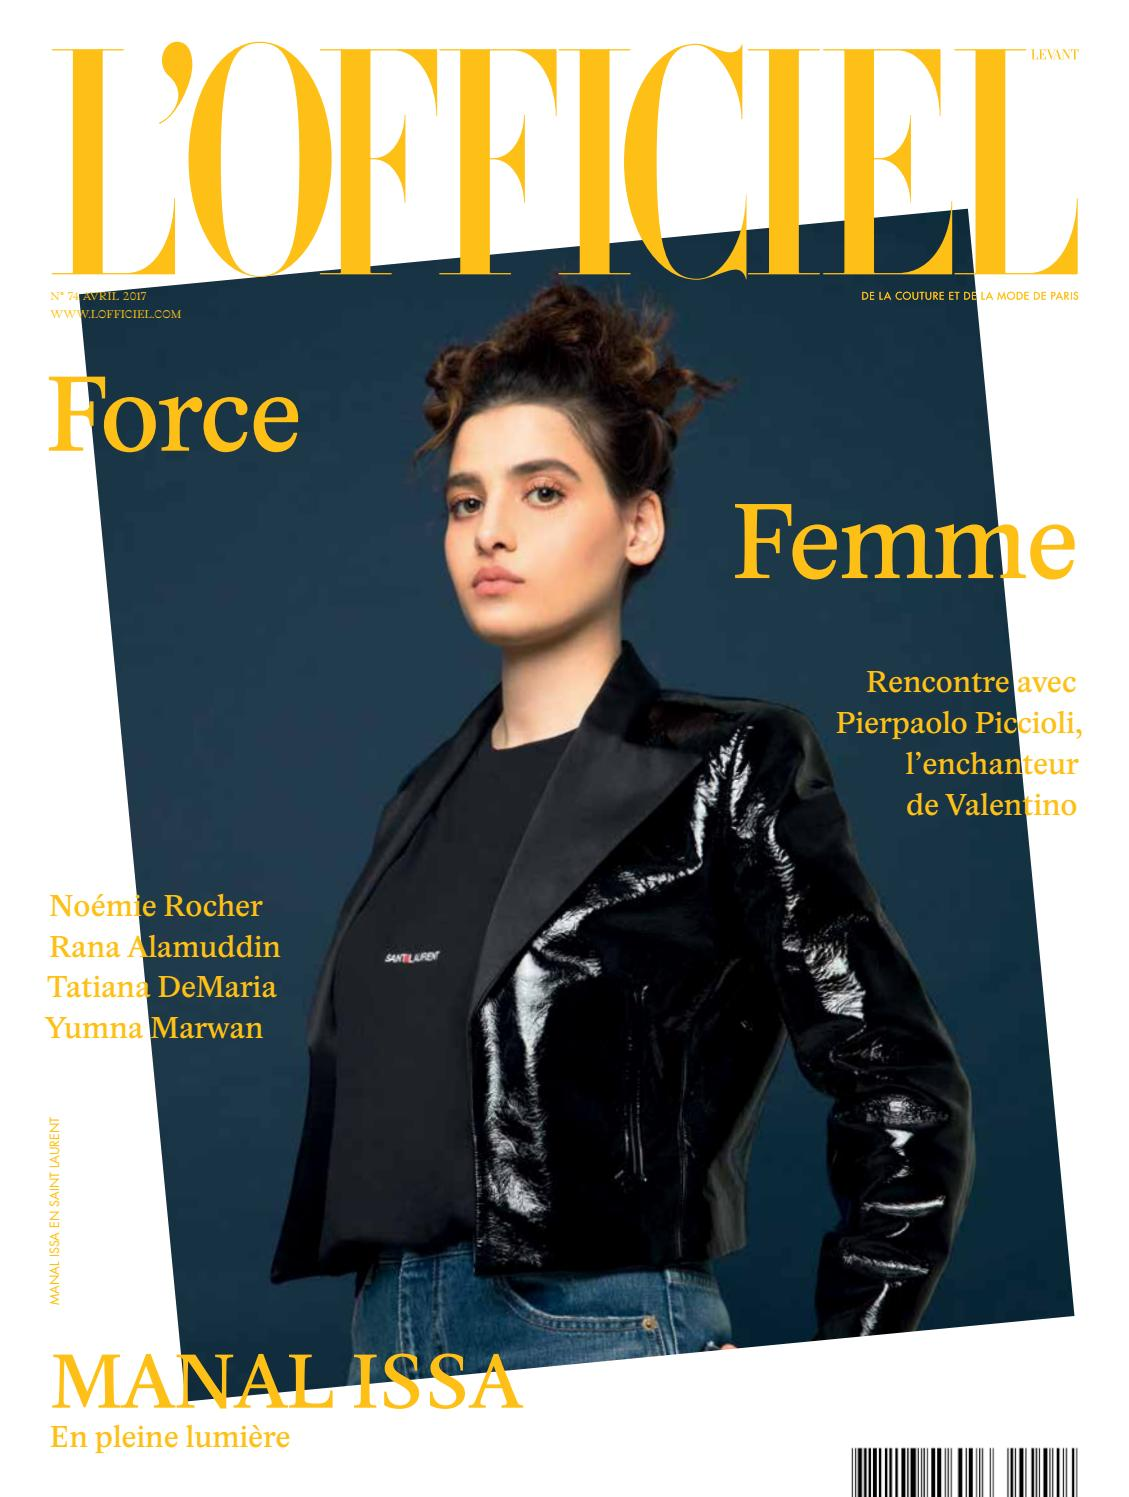 L Officiel-Levant, April Issue 74 by L Officiel Levant - issuu e8237442bc1